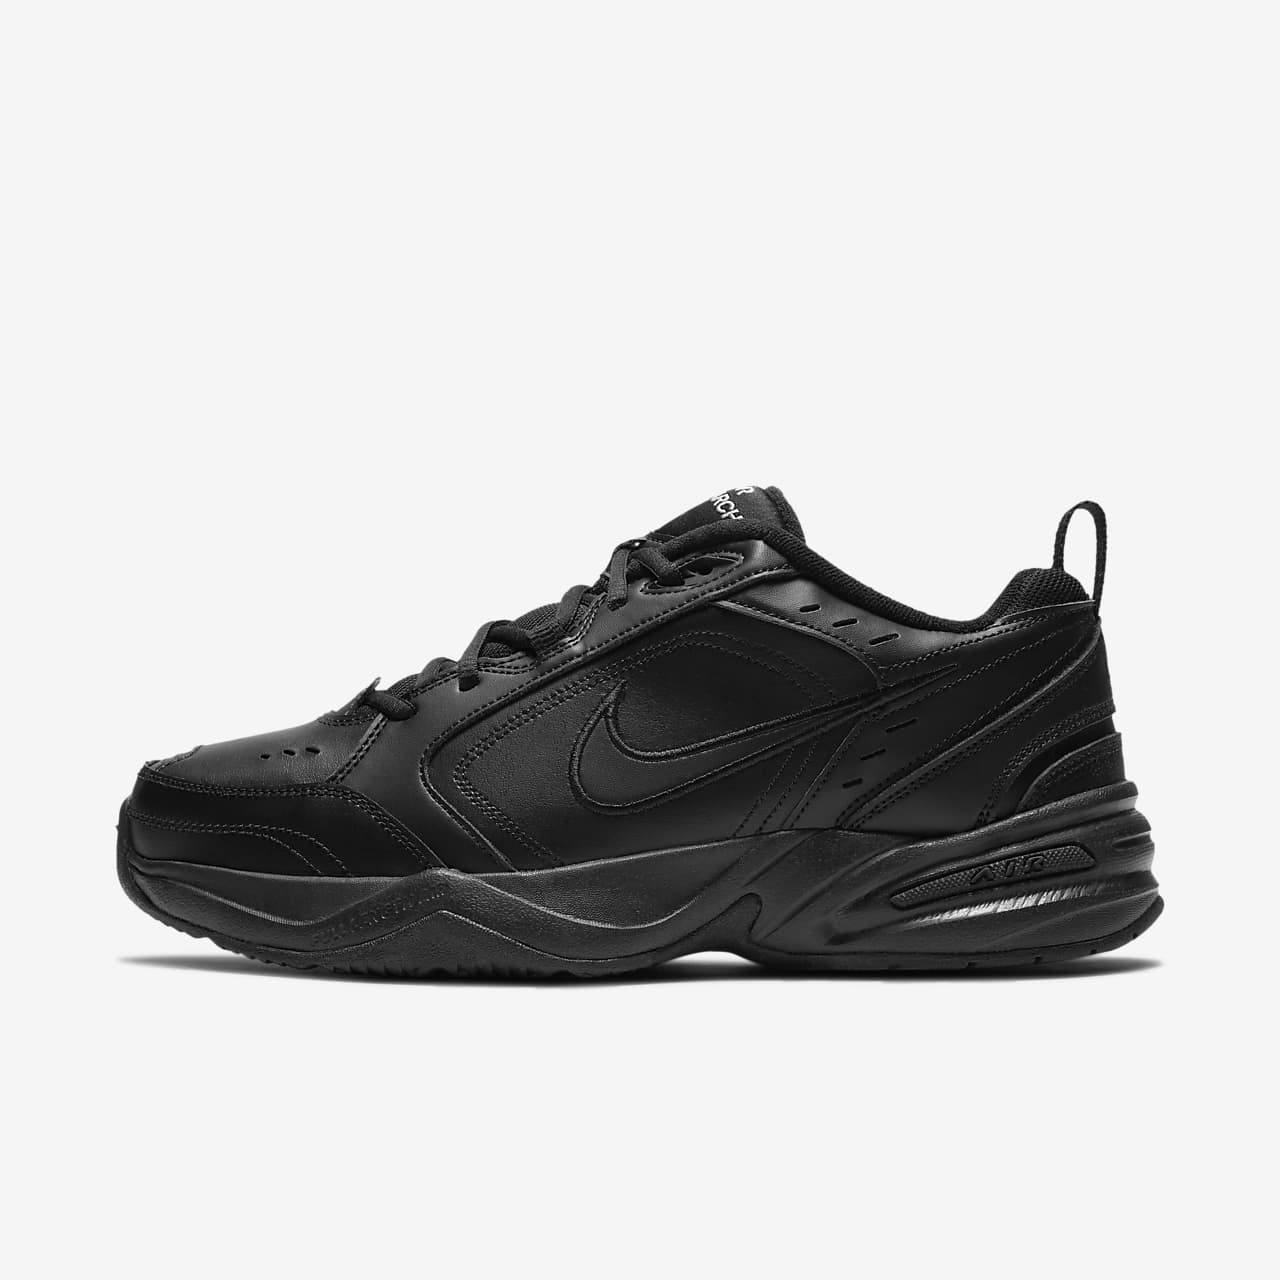 bbf1648c3ff8 Nike Air Monarch IV Lifestyle Gym Shoe. Nike.com GB